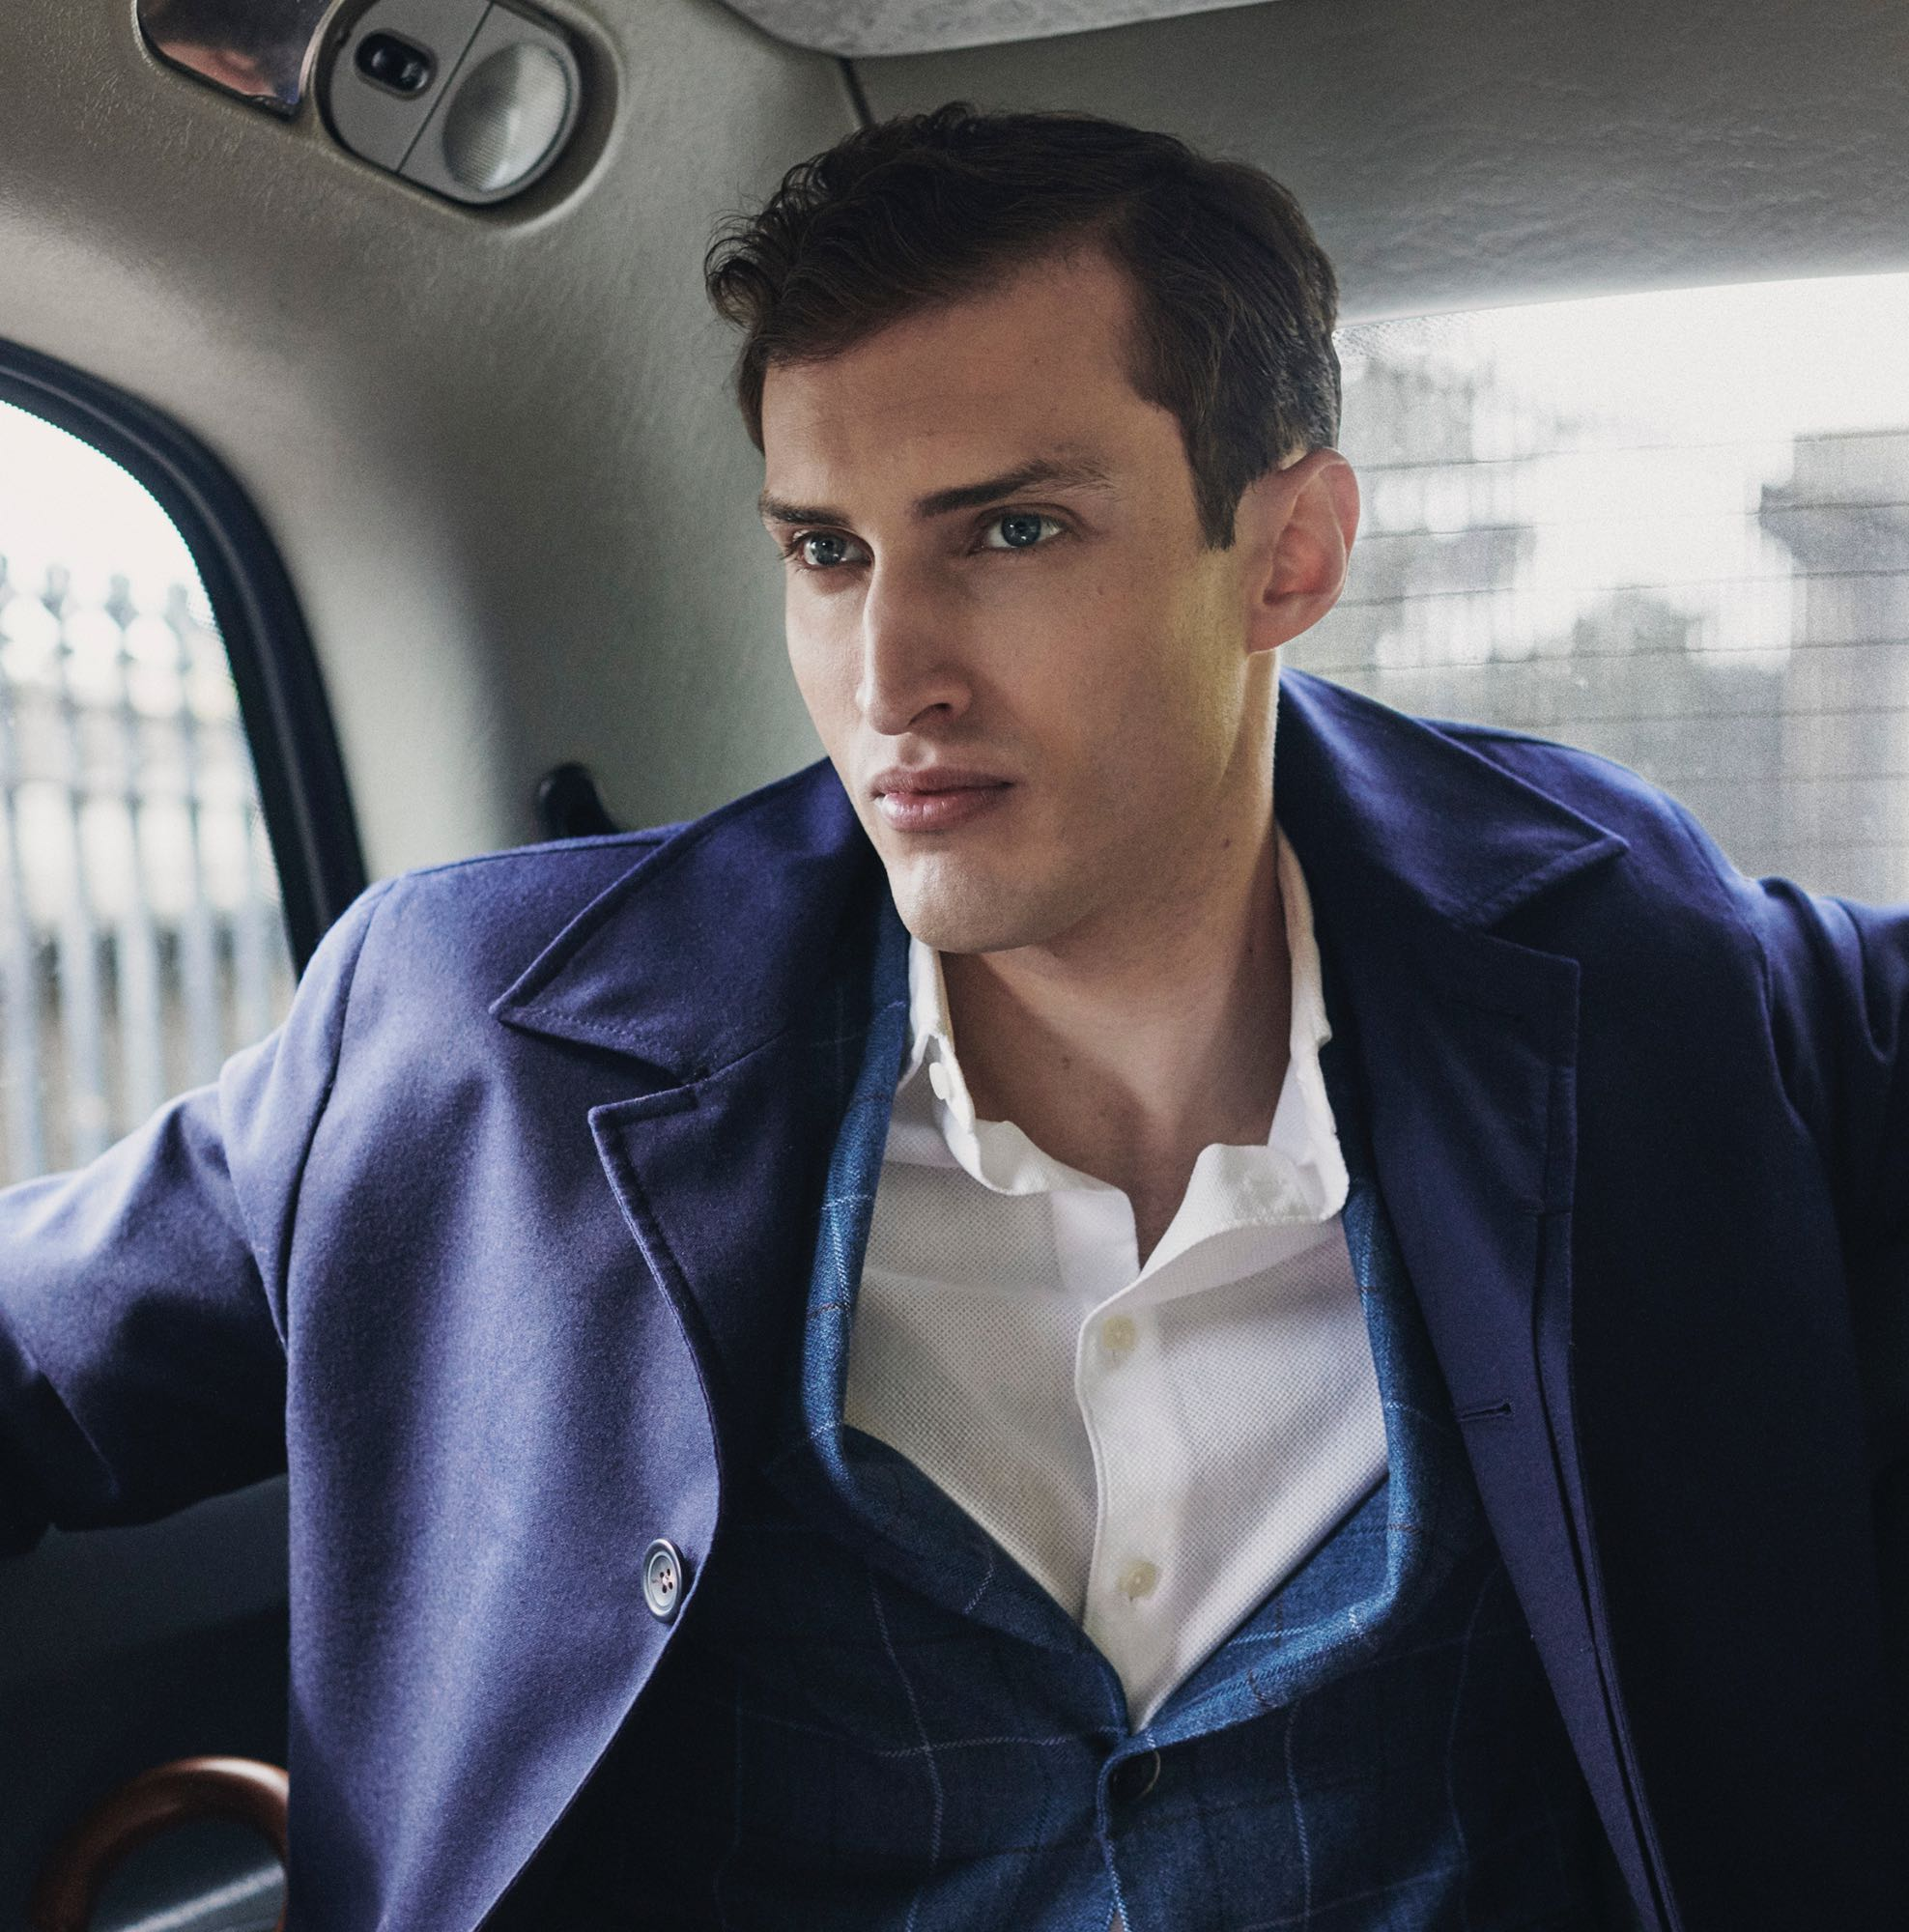 Verwonderlijk Stay Stylish With Our Products & Services For Men | Hackett UJ-89